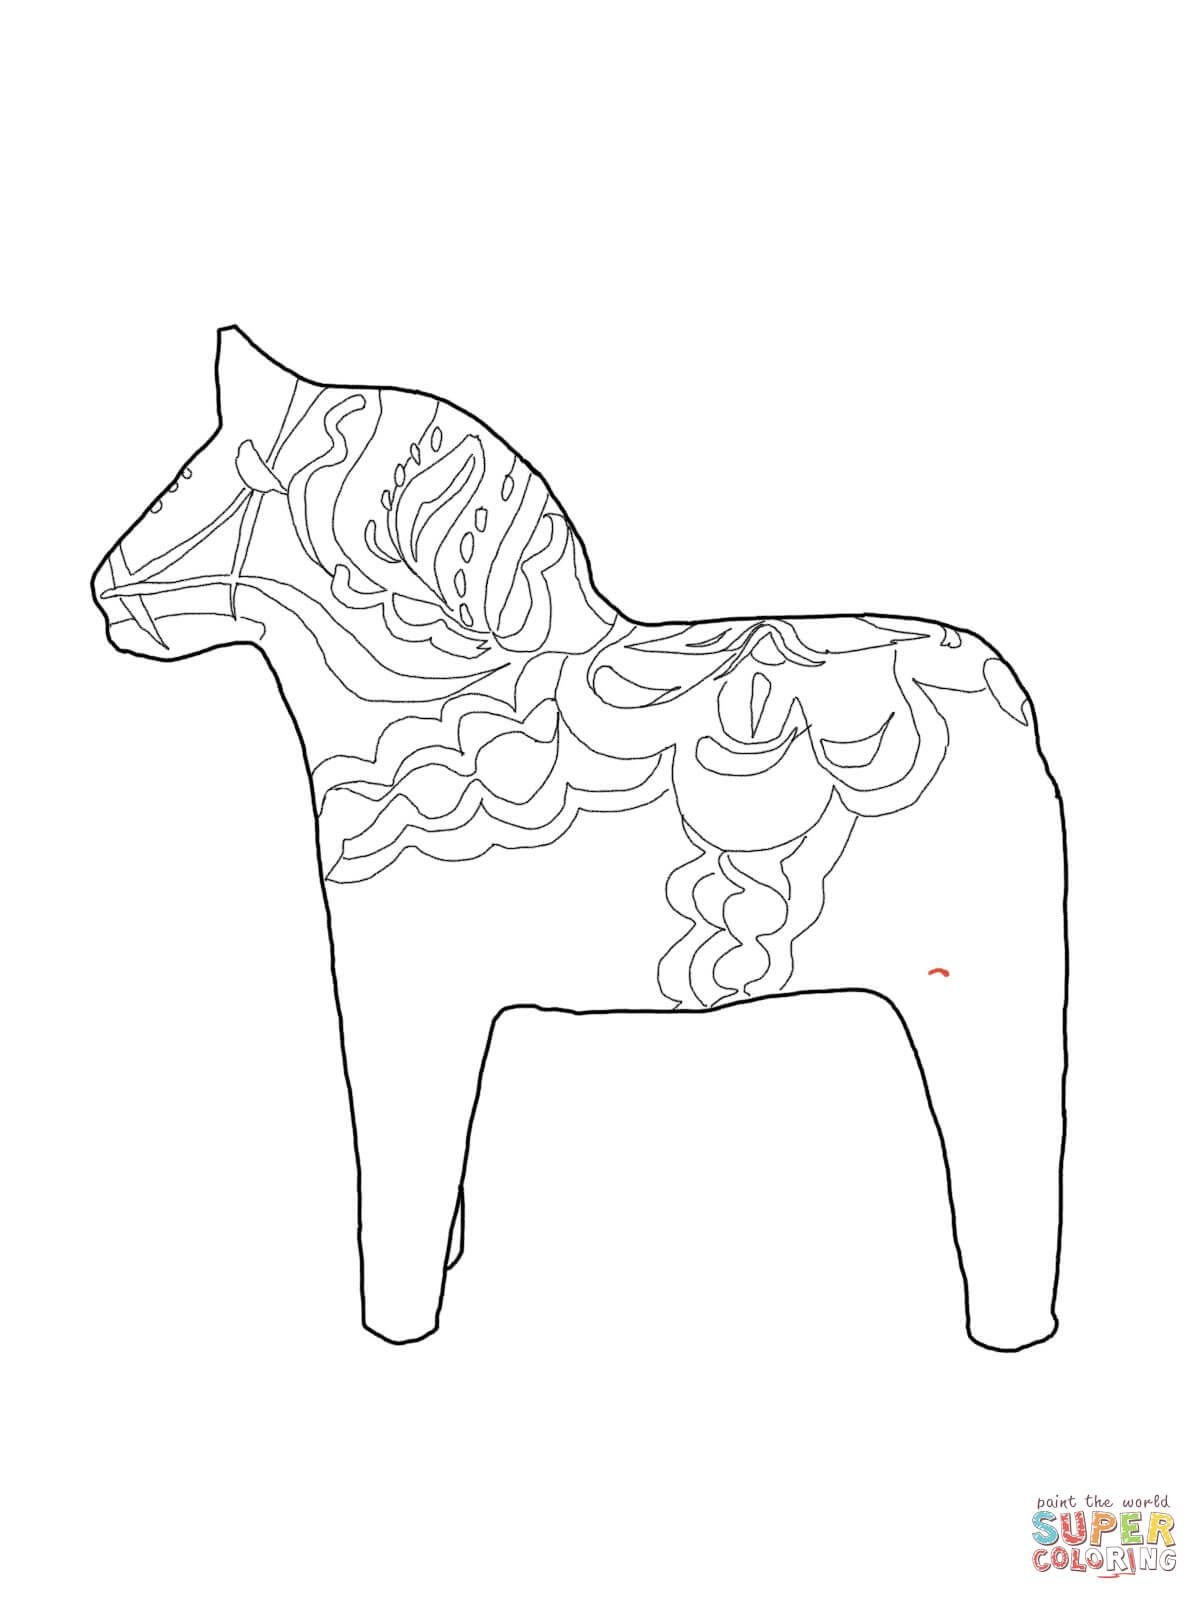 Swedish Dala Horse Coloring Page From Sweden Category Select From